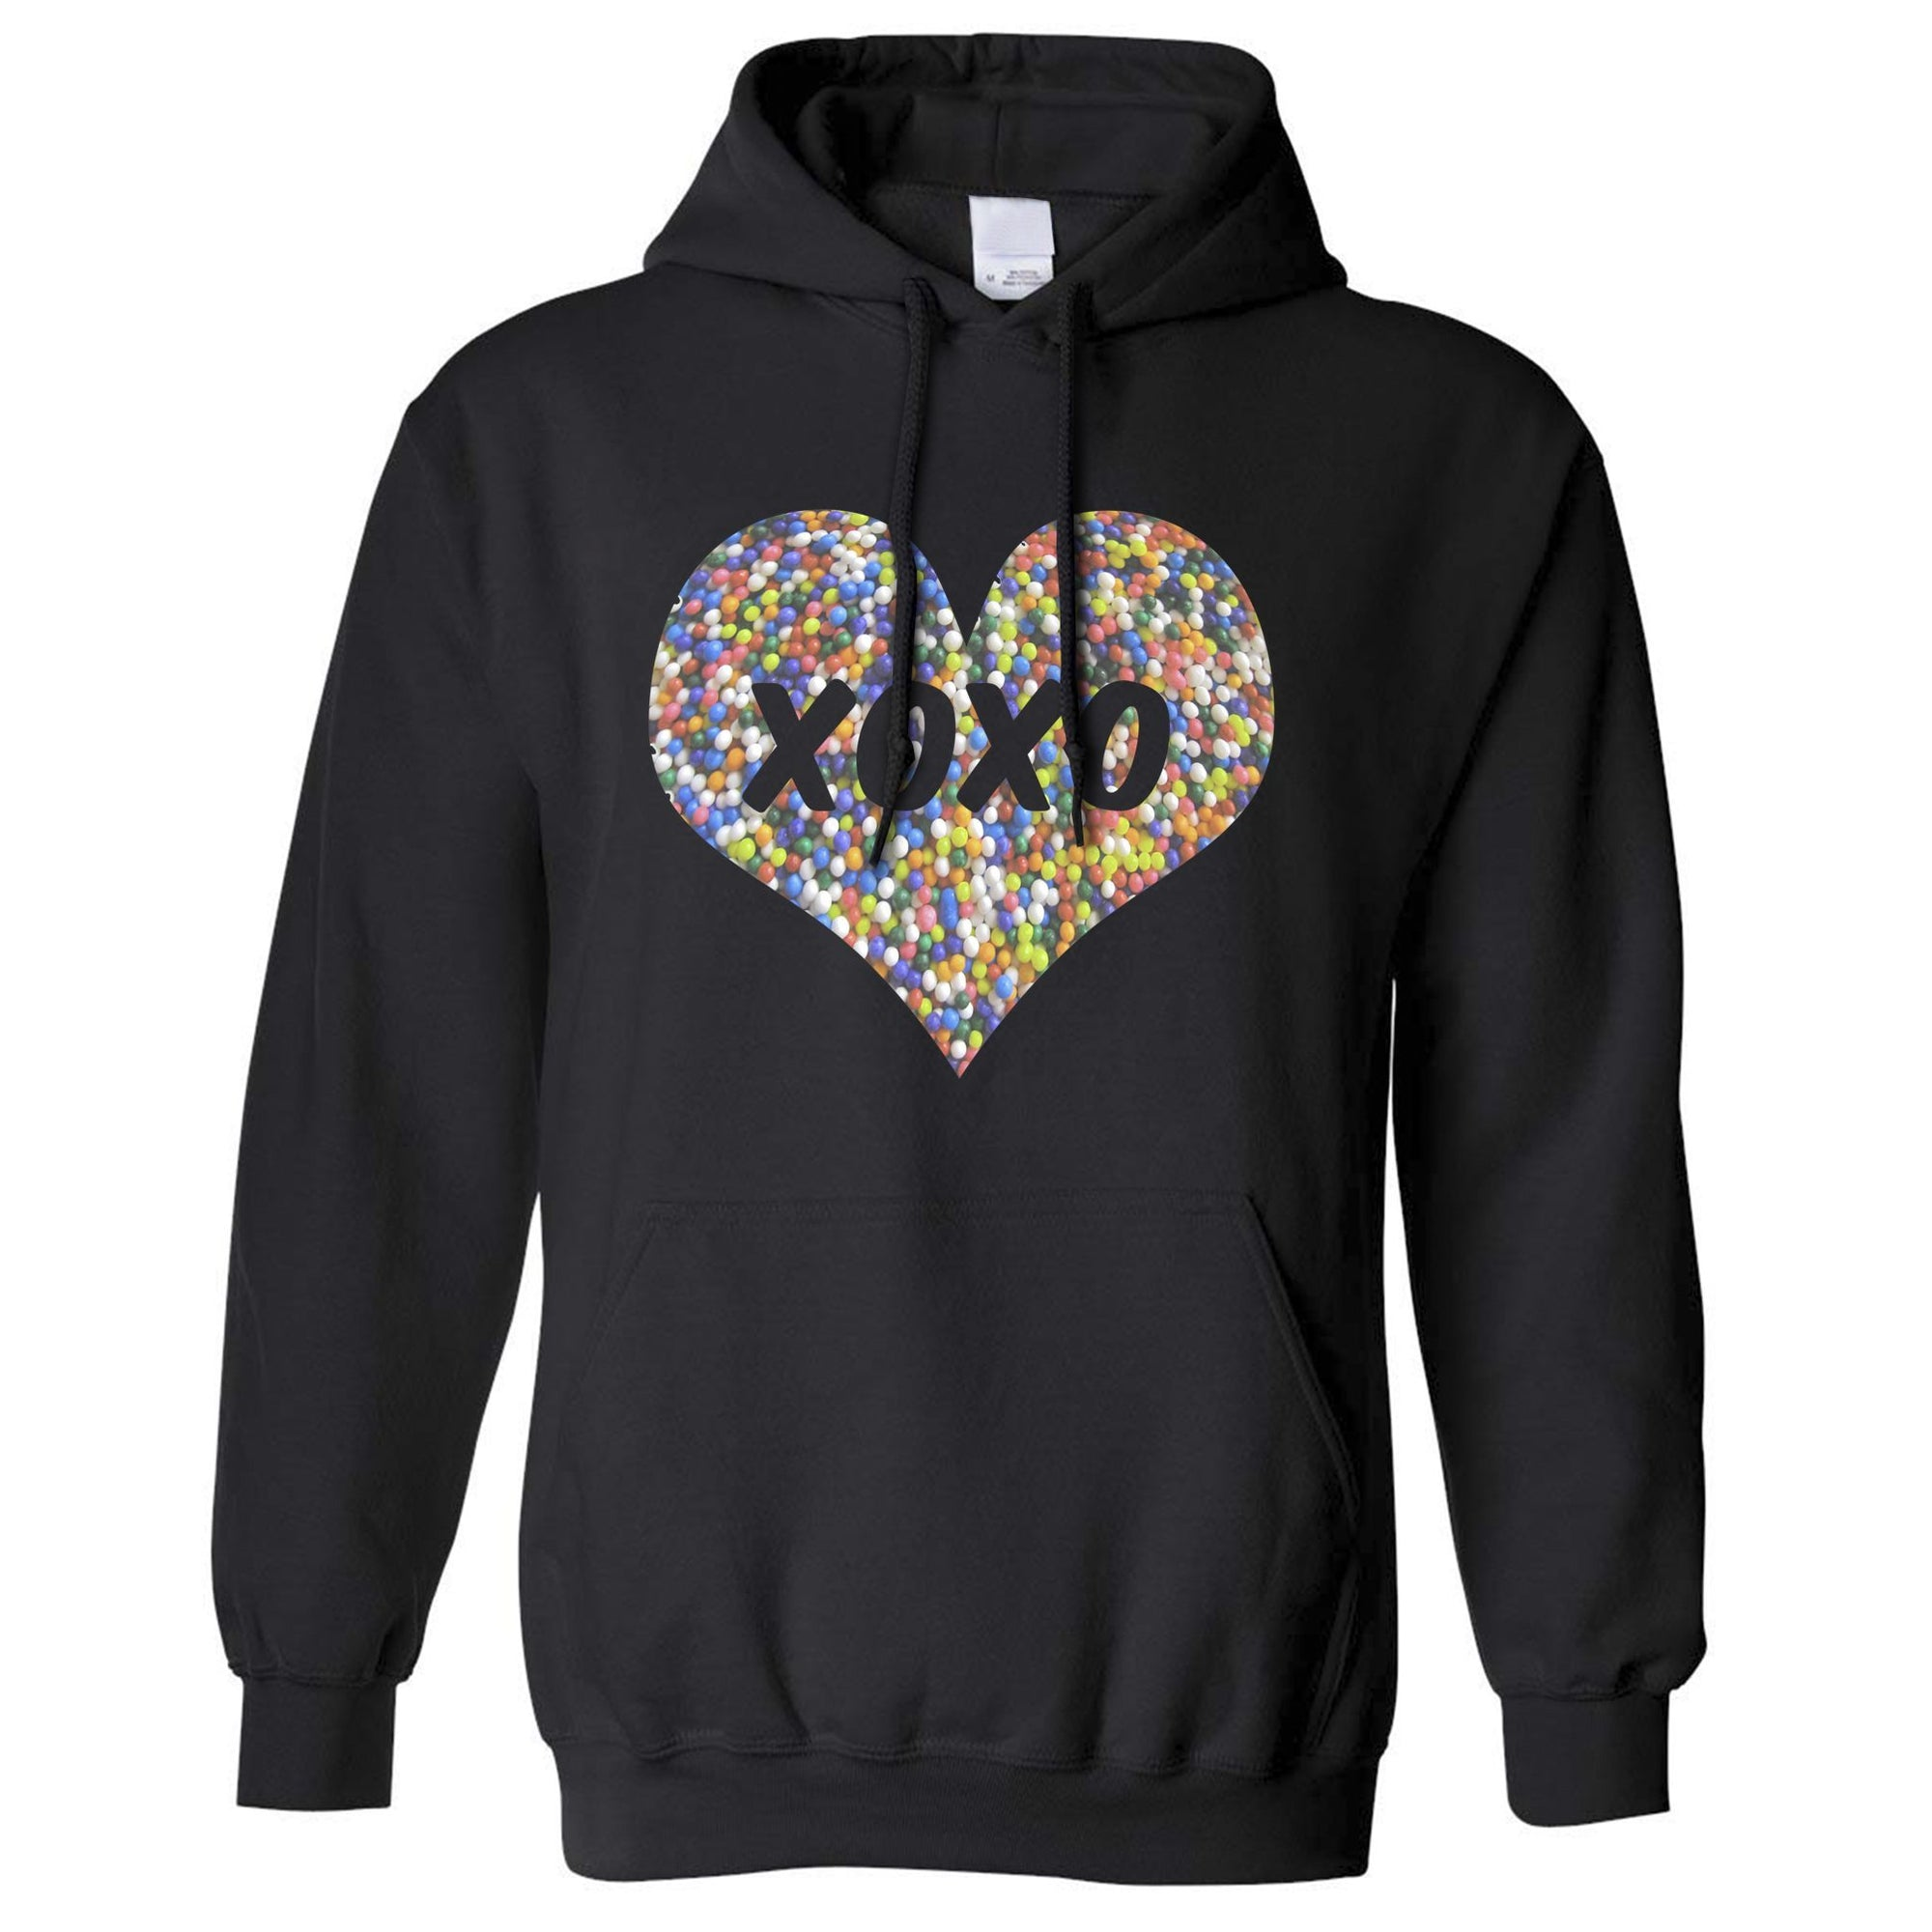 Sweetheart Hoodie Hood XOXO Love And Kisses Logo